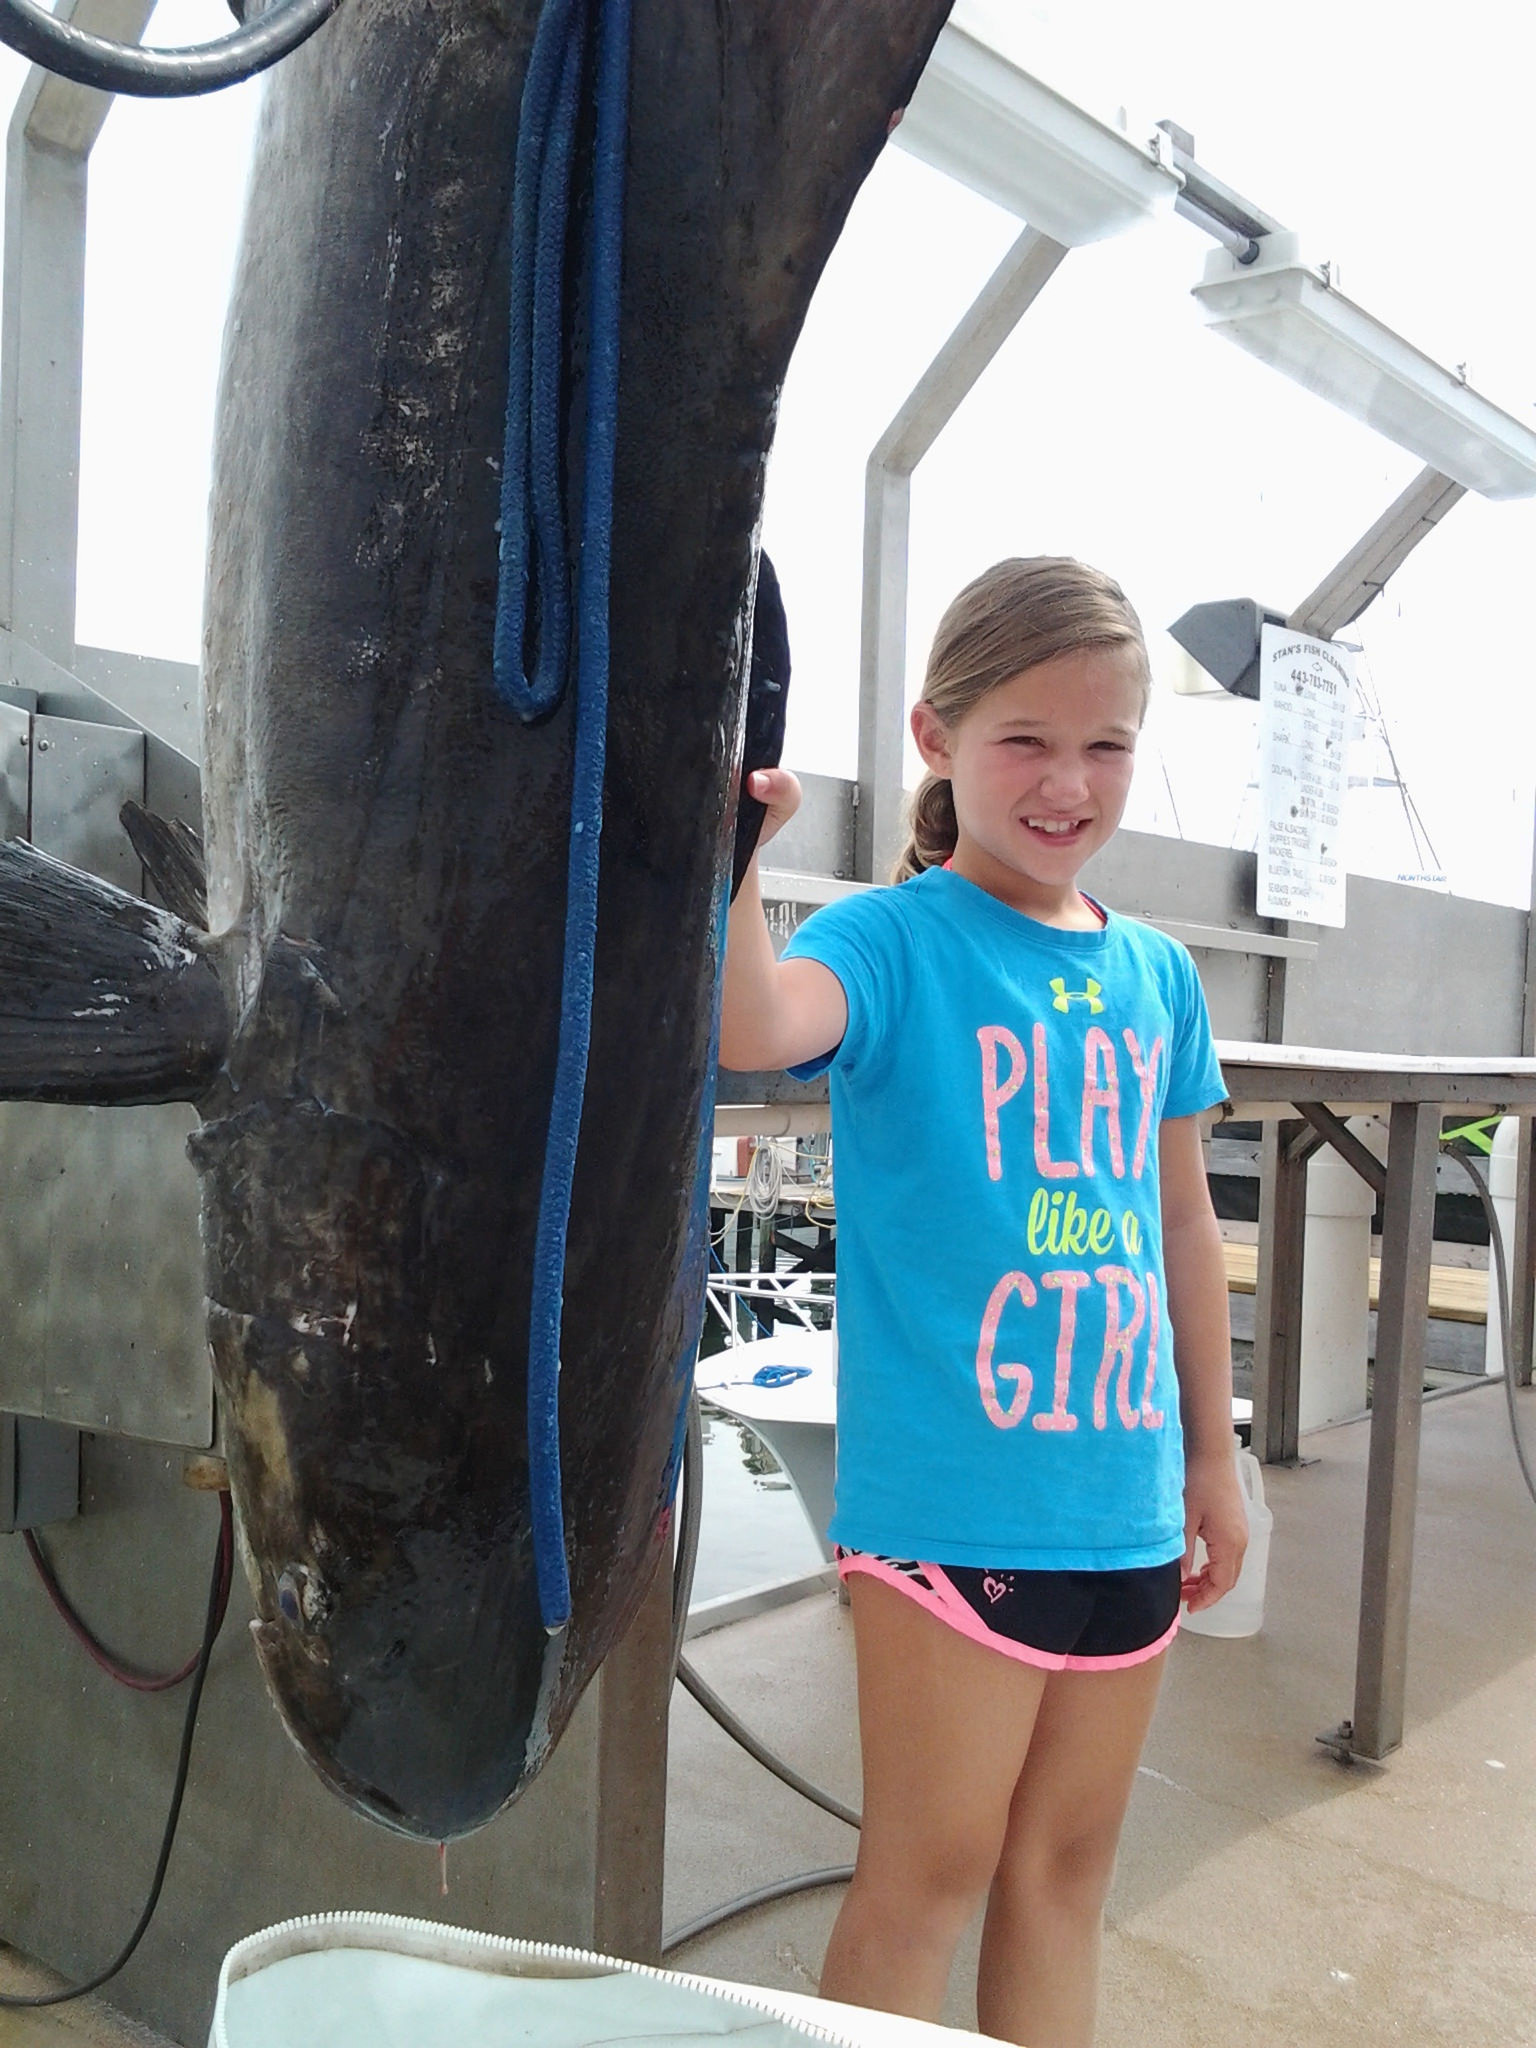 9-year-old Girl Catches Record Fish Weighing 94.6 Pounds